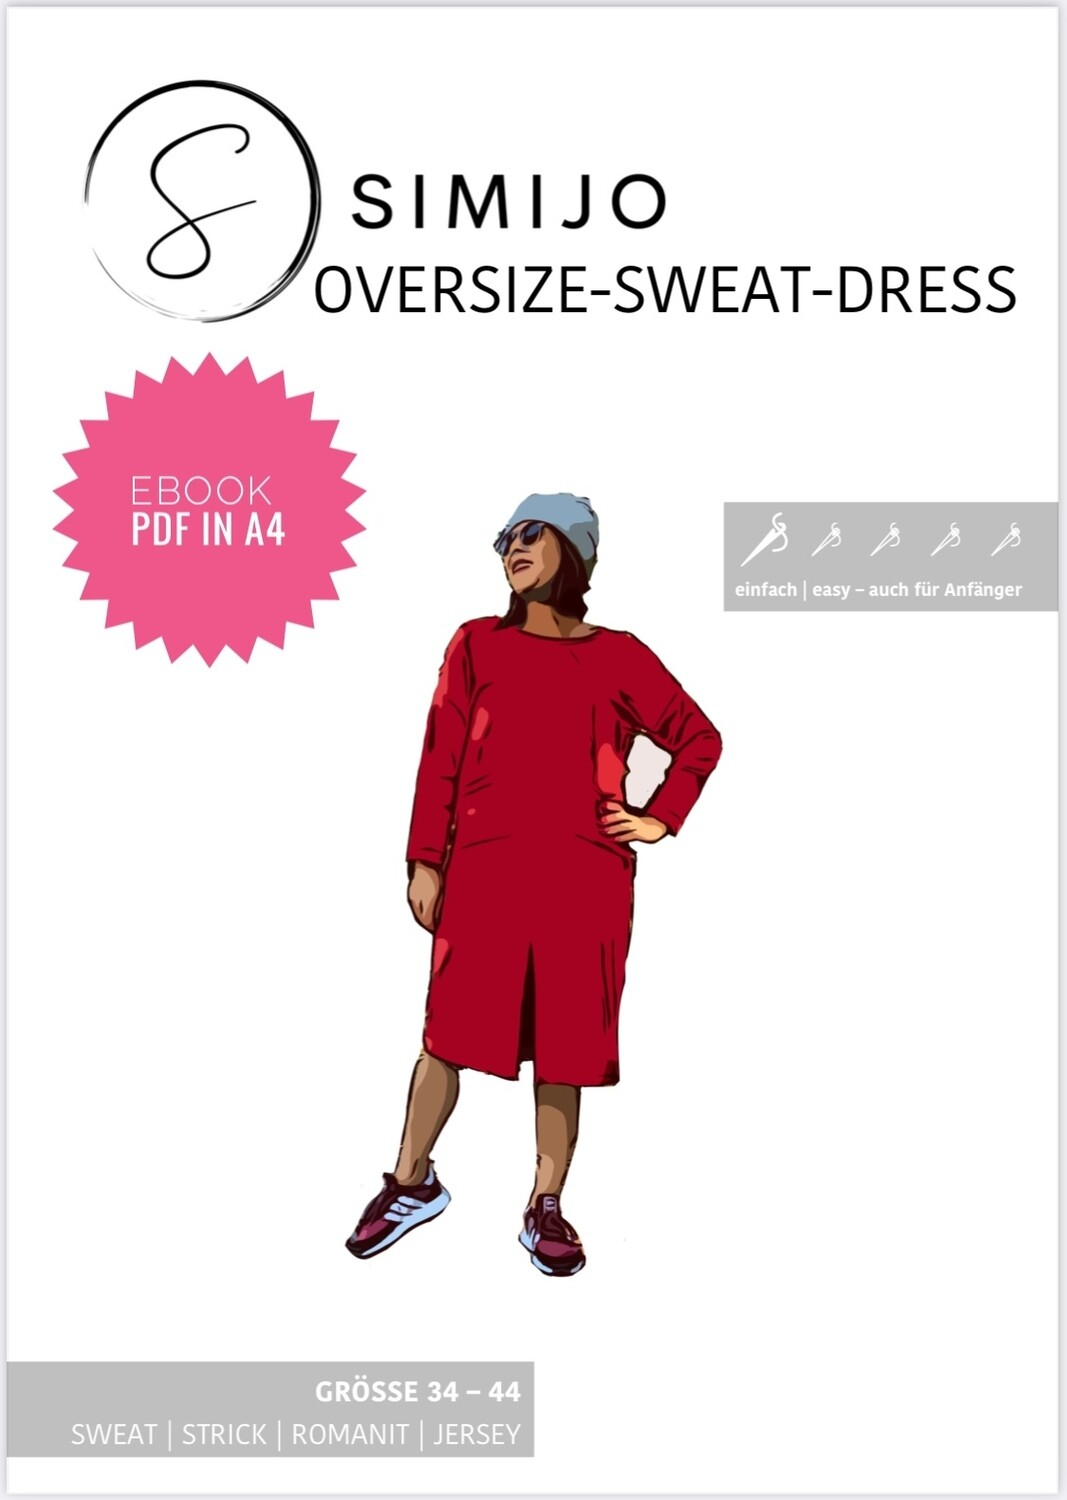 Oversize Sweat Dress - eBook Schnittmuster (PDF A4 Druck)